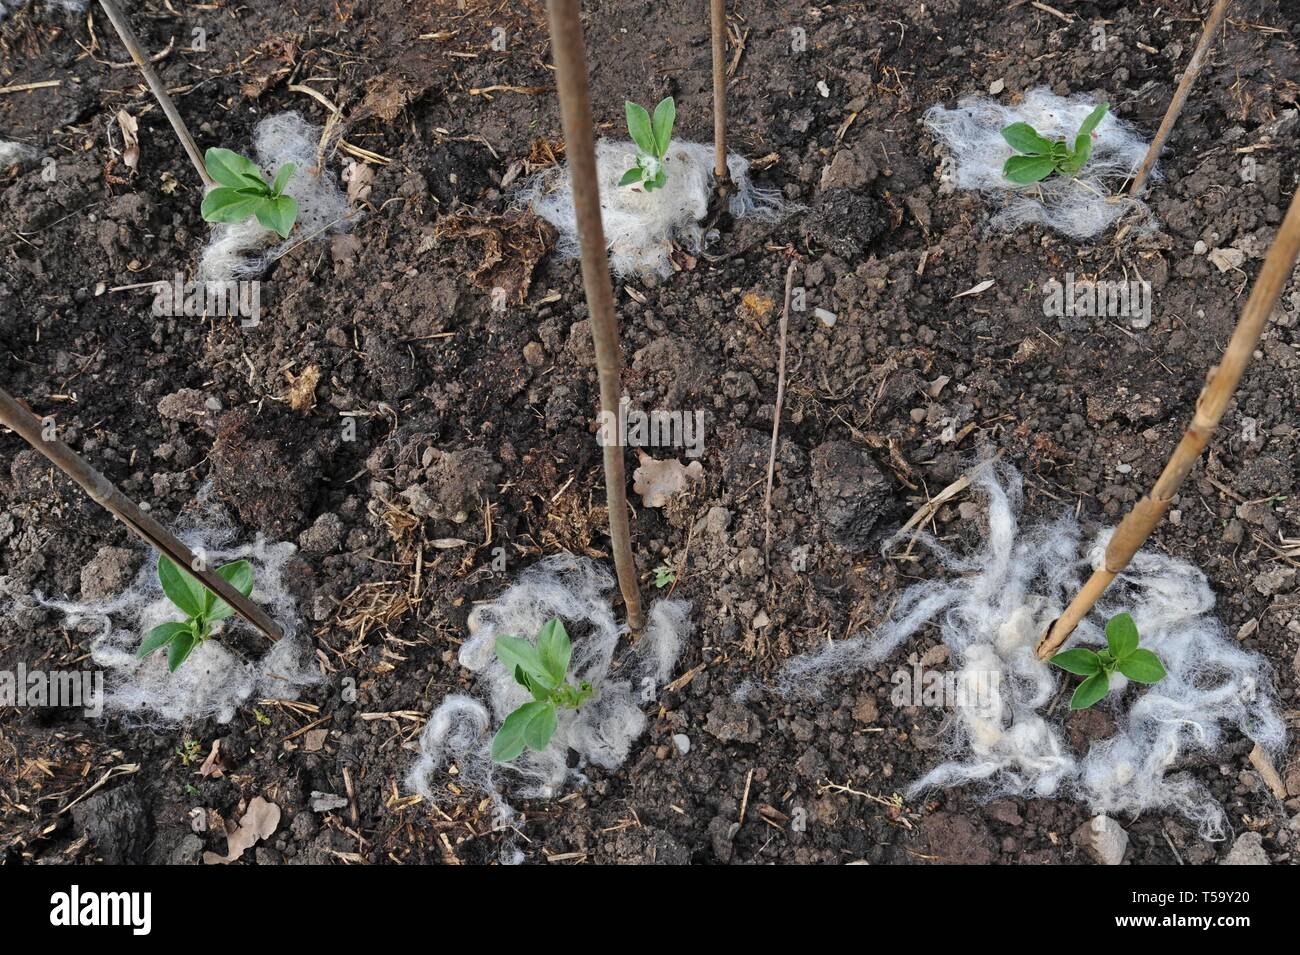 Young broad bean (Vicia faba) plants showing sheep's wool used as a natural green gardening slug deterrent - Stock Image